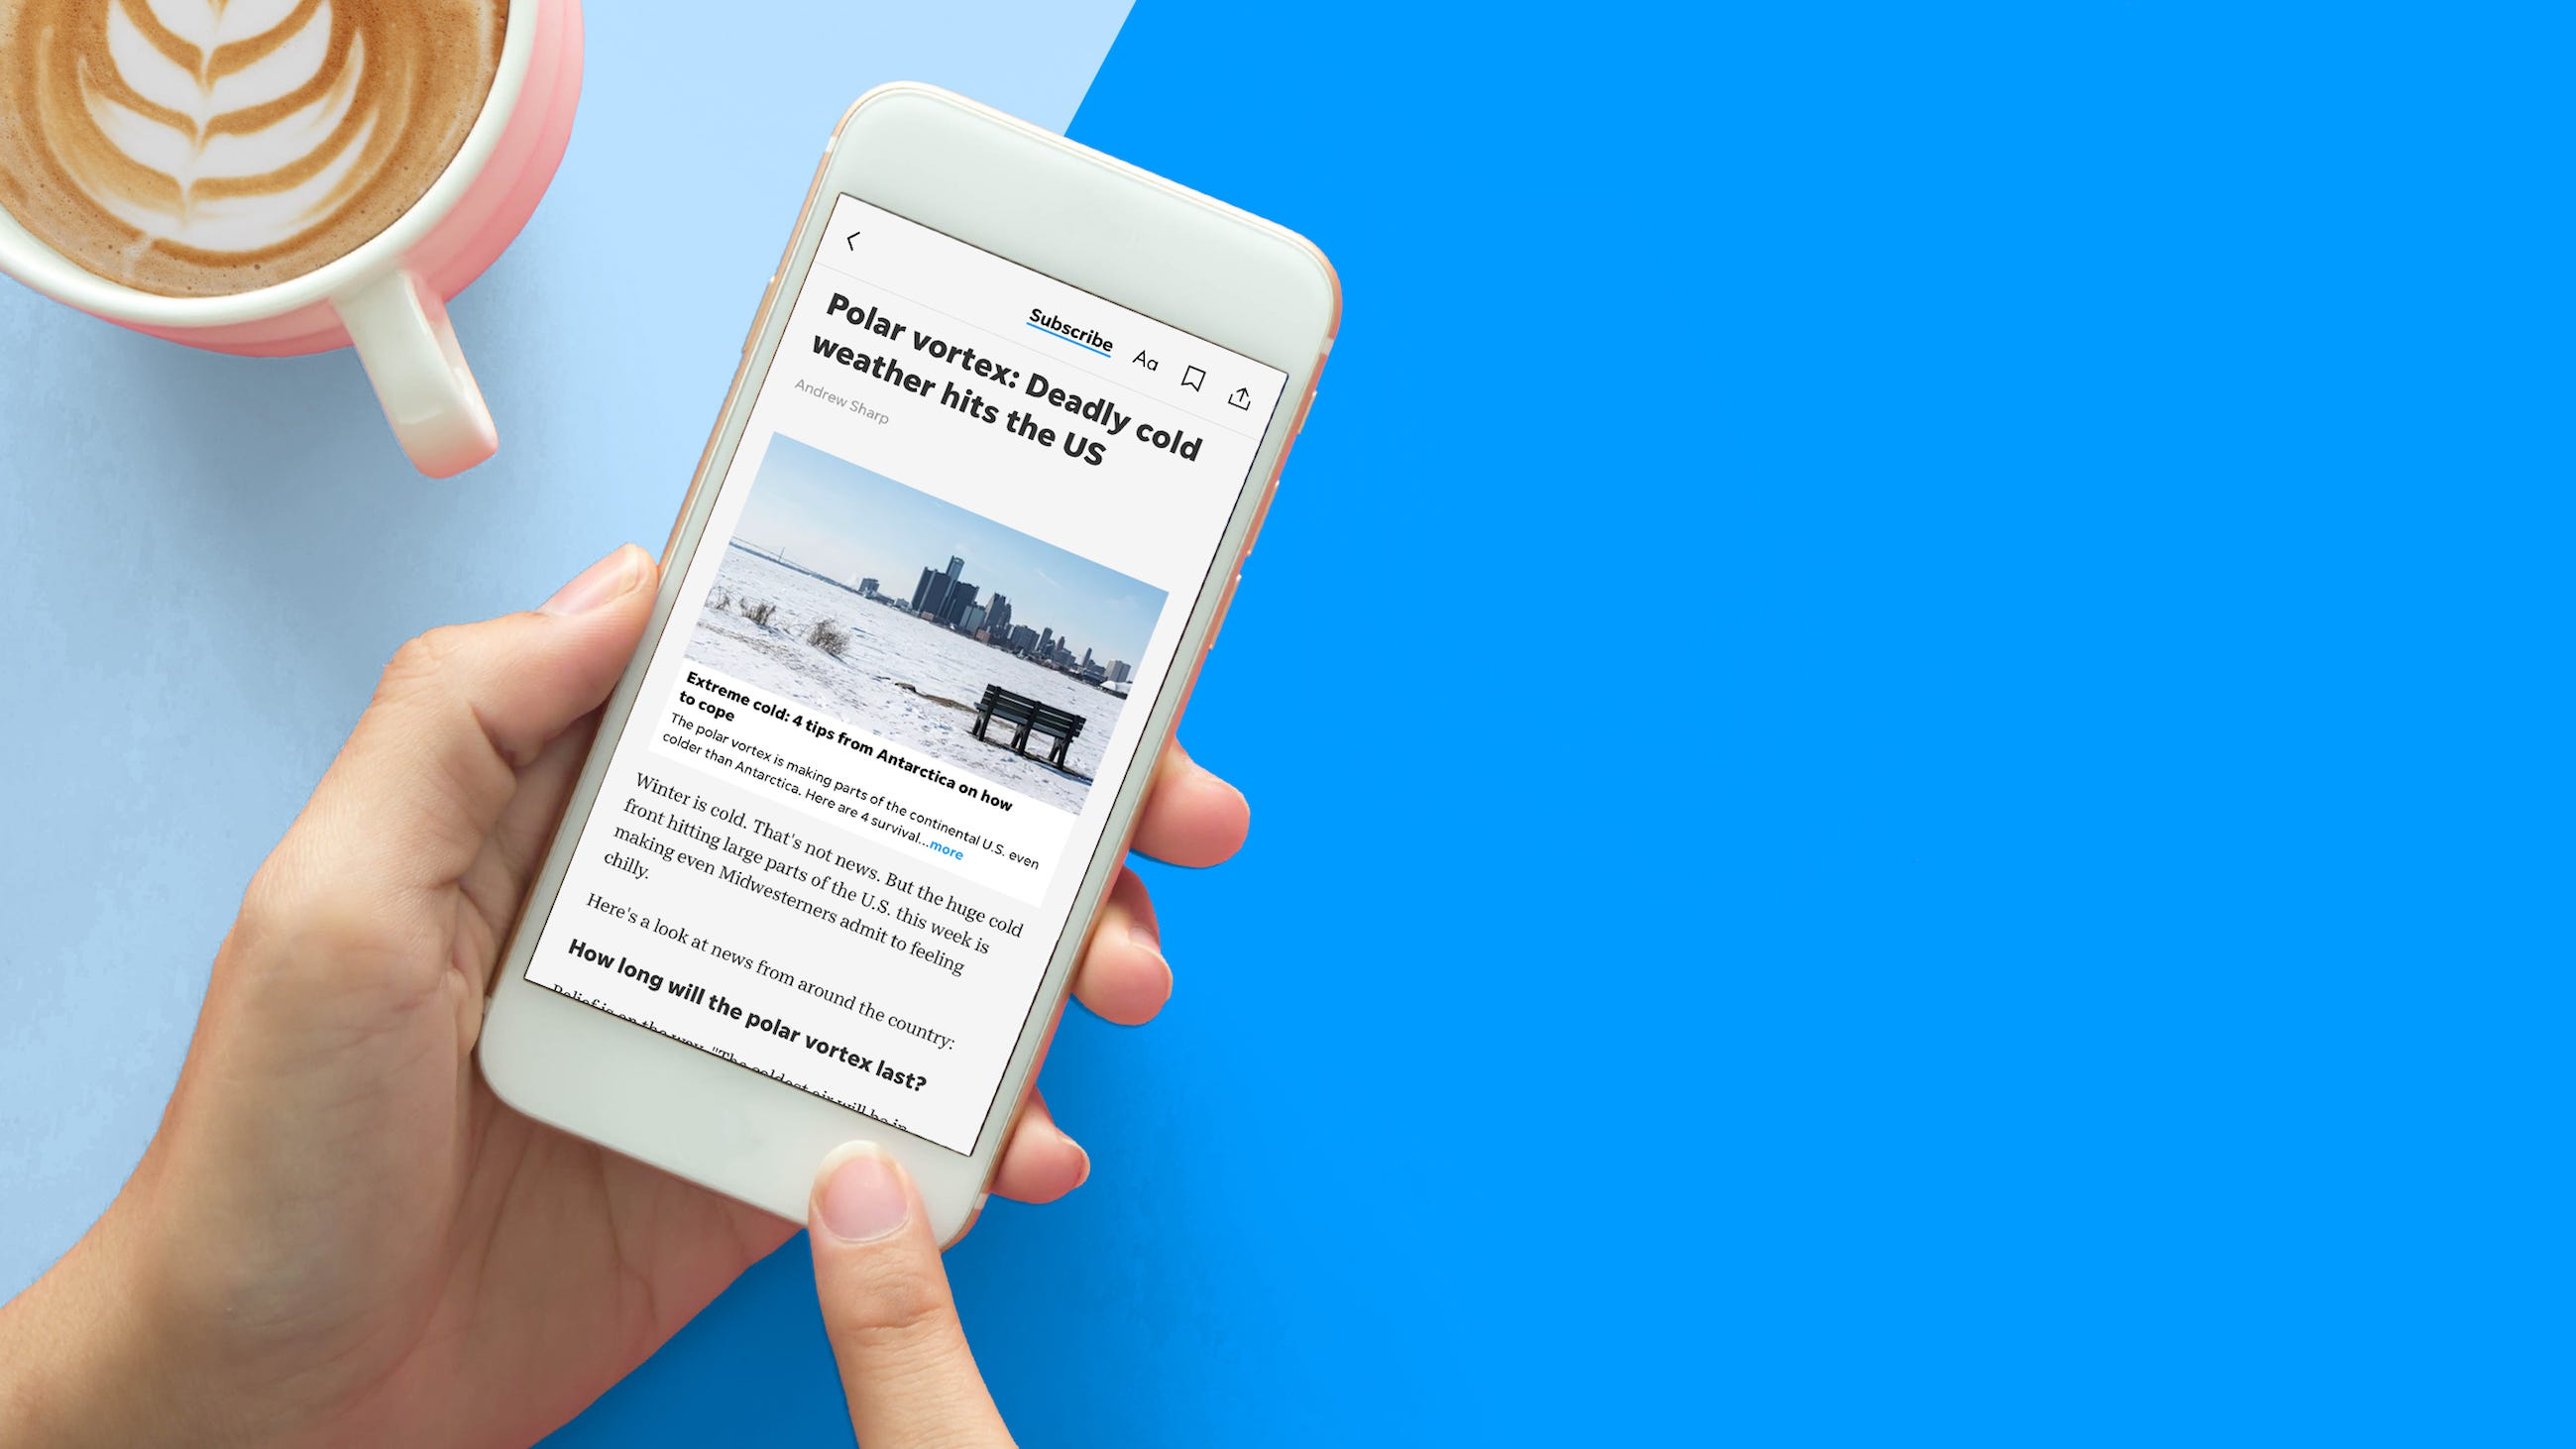 How to best experience The Daily Journal app